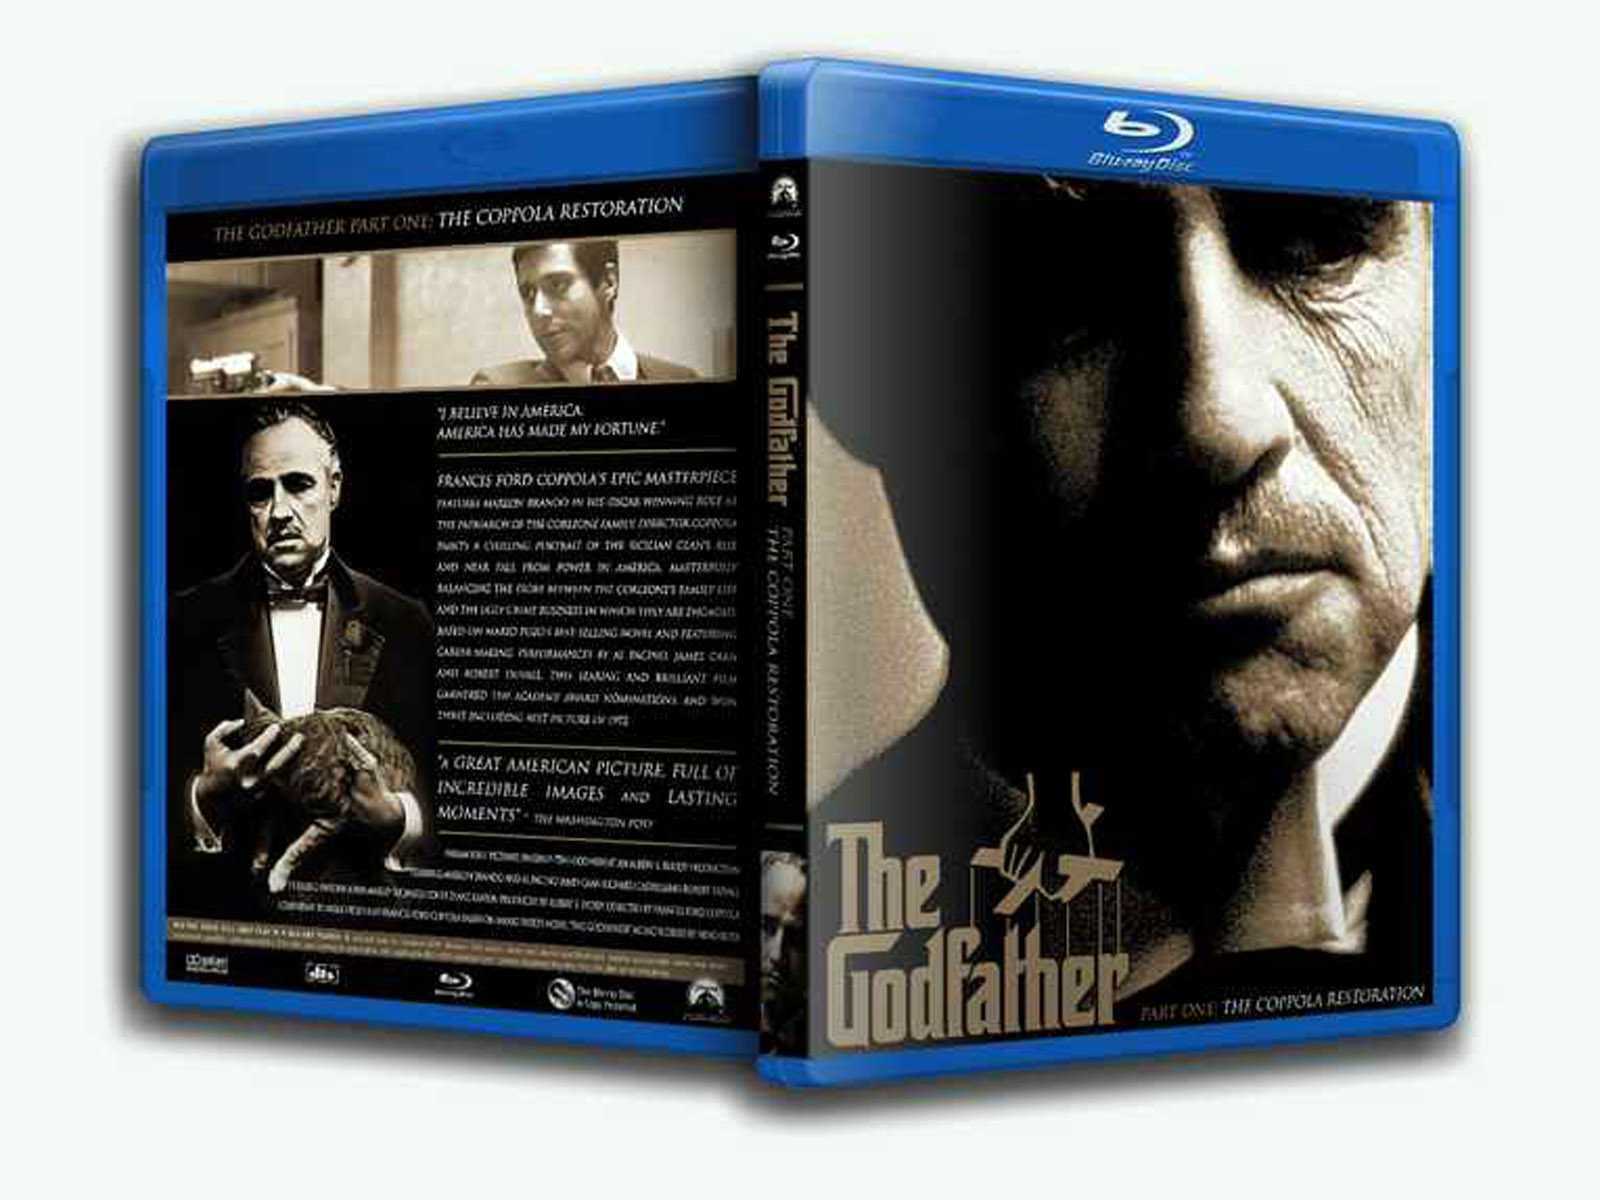 The Godfather1 Blu-ray DVD Case Box